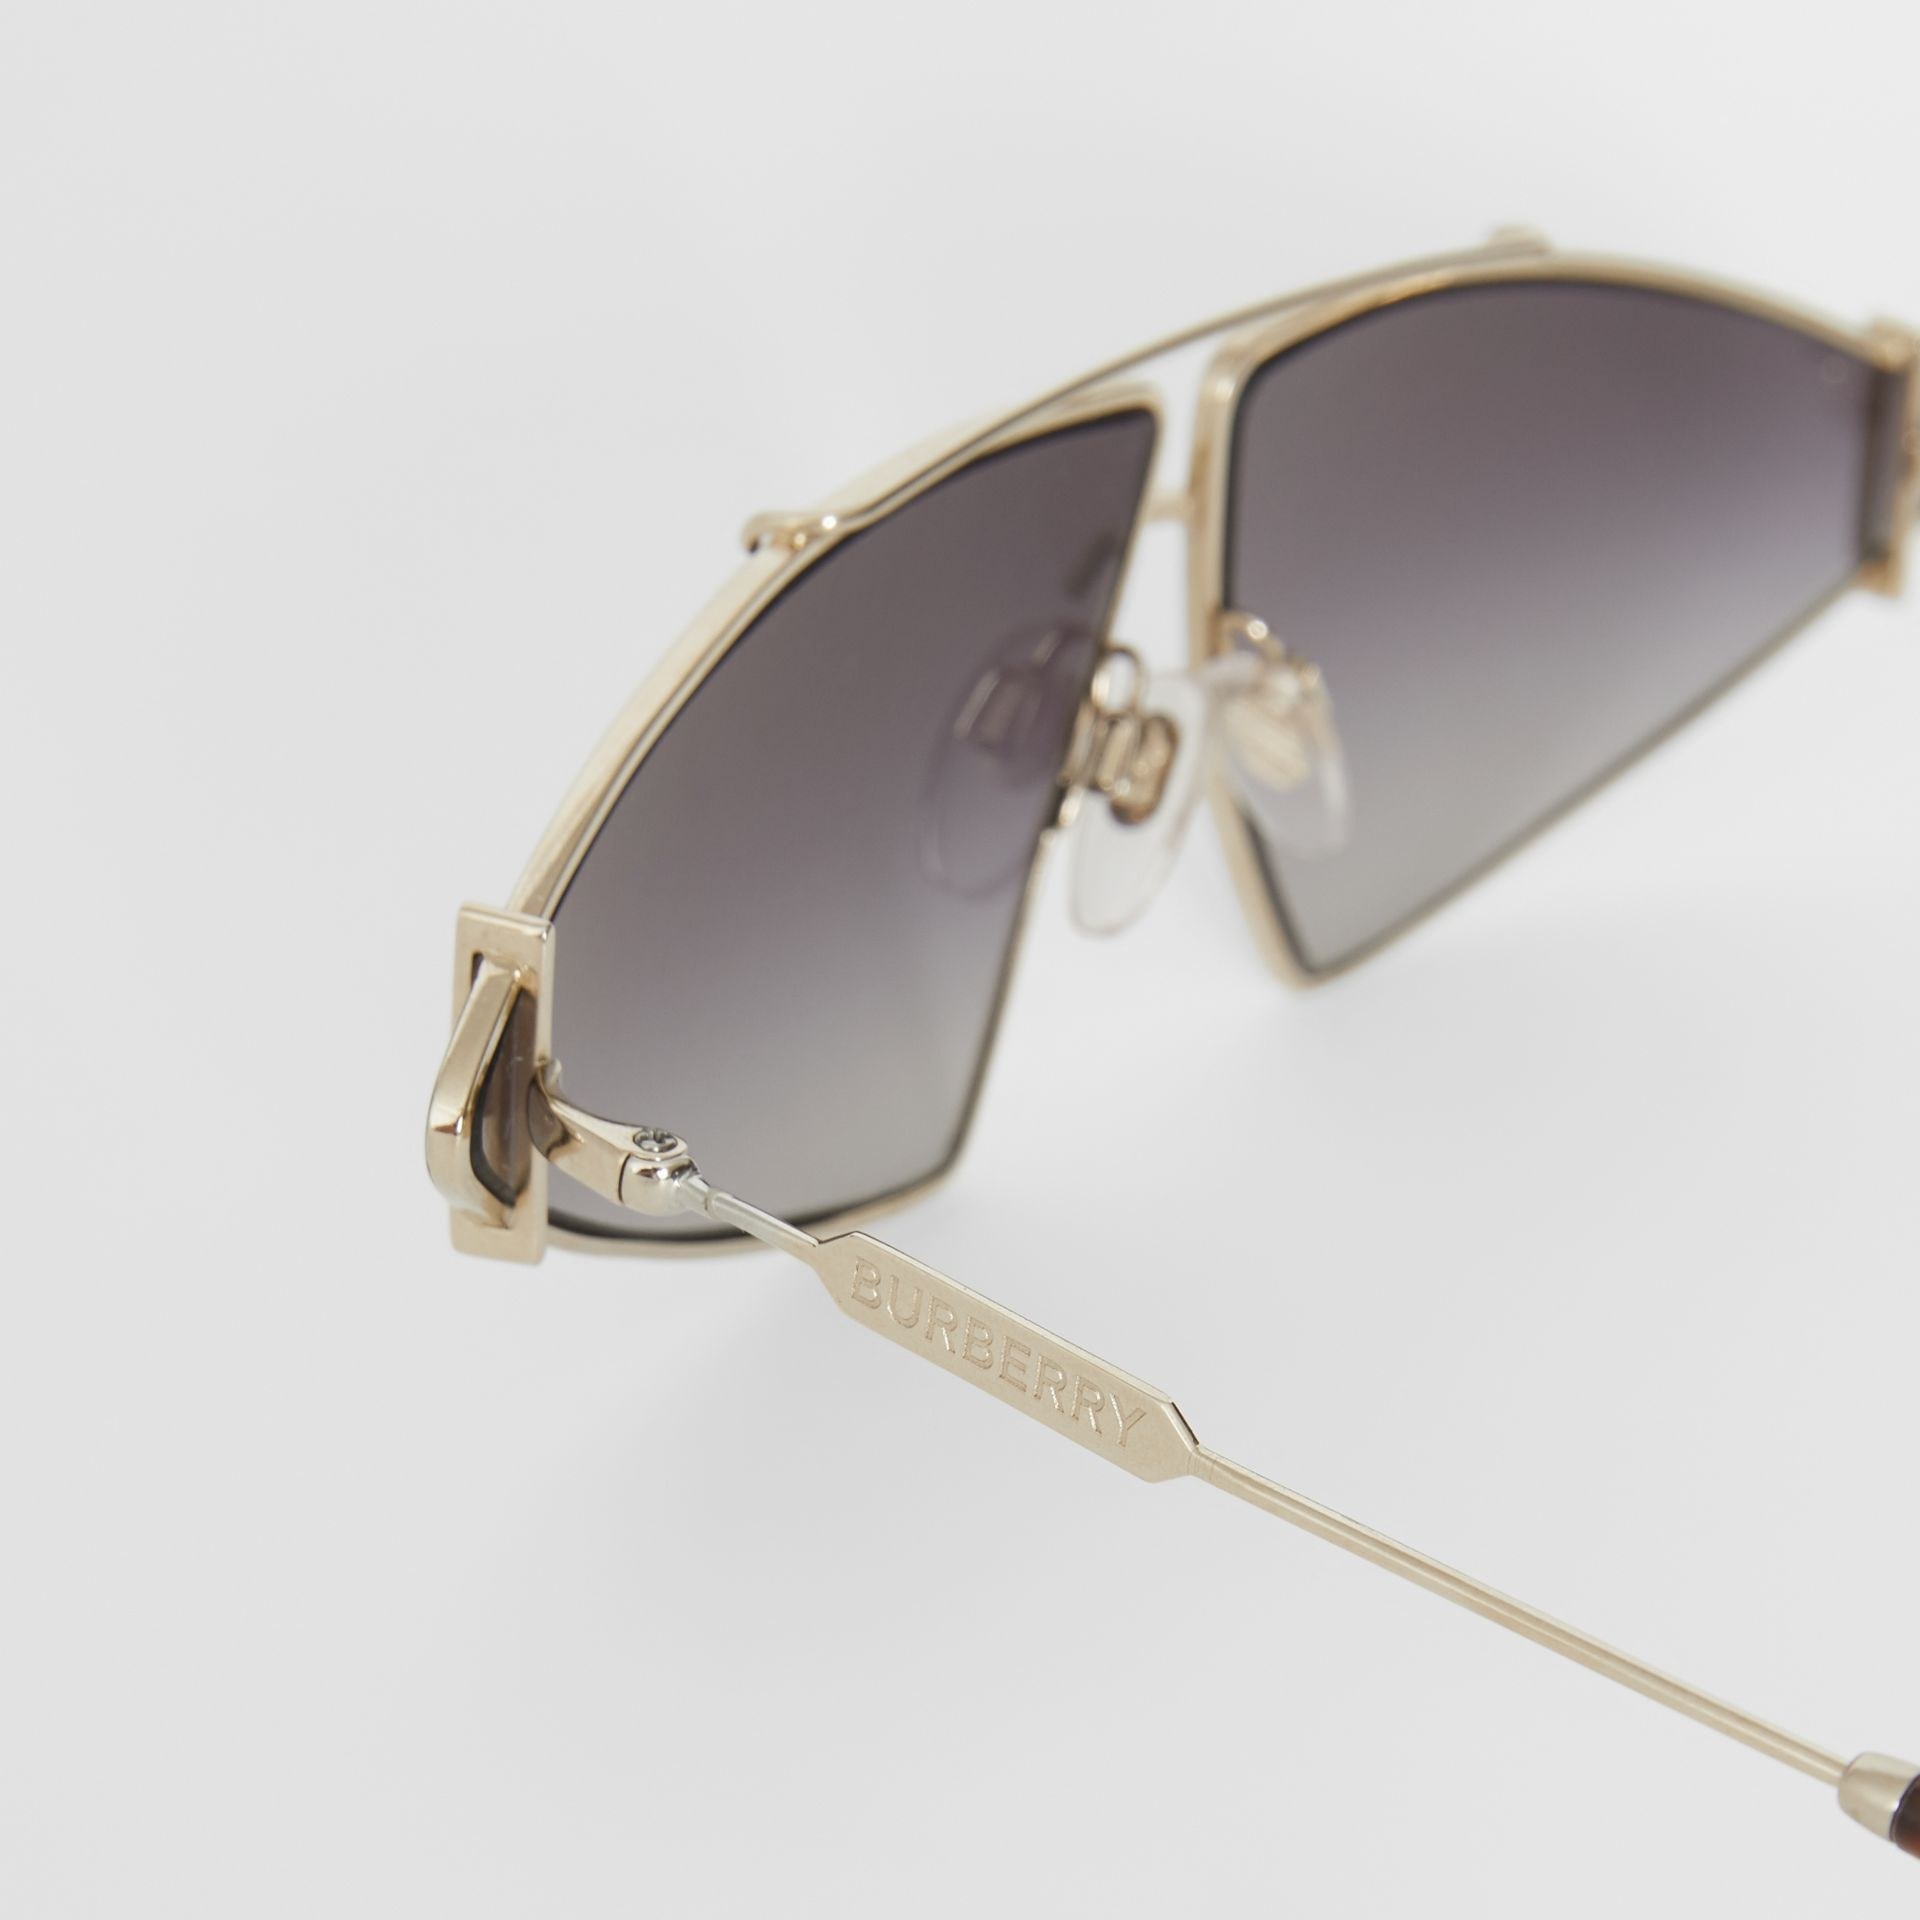 Gold-plated Triangular Frame Sunglasses in Black - Women | Burberry Singapore - gallery image 5